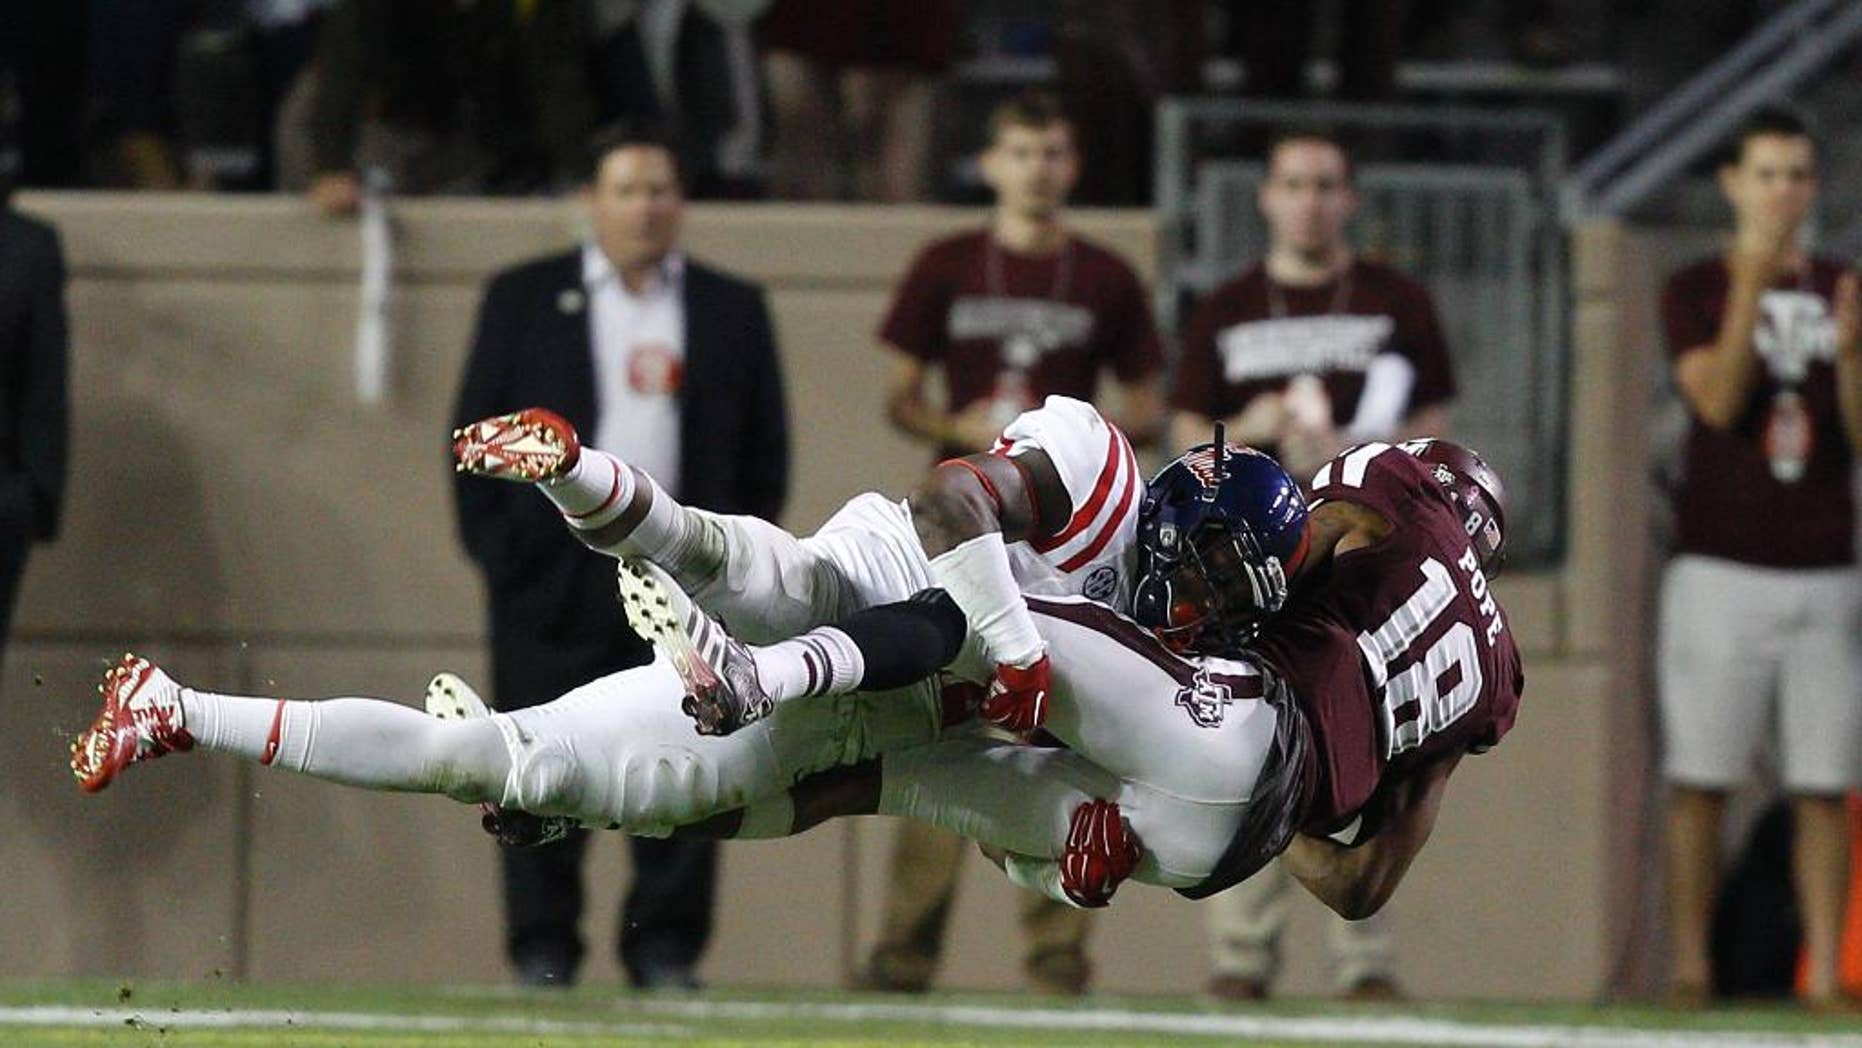 Texas A&M wide receiver Edward Pope (18) is tackled by Mississippi defensive back Tony Conner (12) during the third quarter of an NCAA college football game Saturday, Oct. 11,  2014, in College Station, Texas. (AP Photo/Bob Levey)